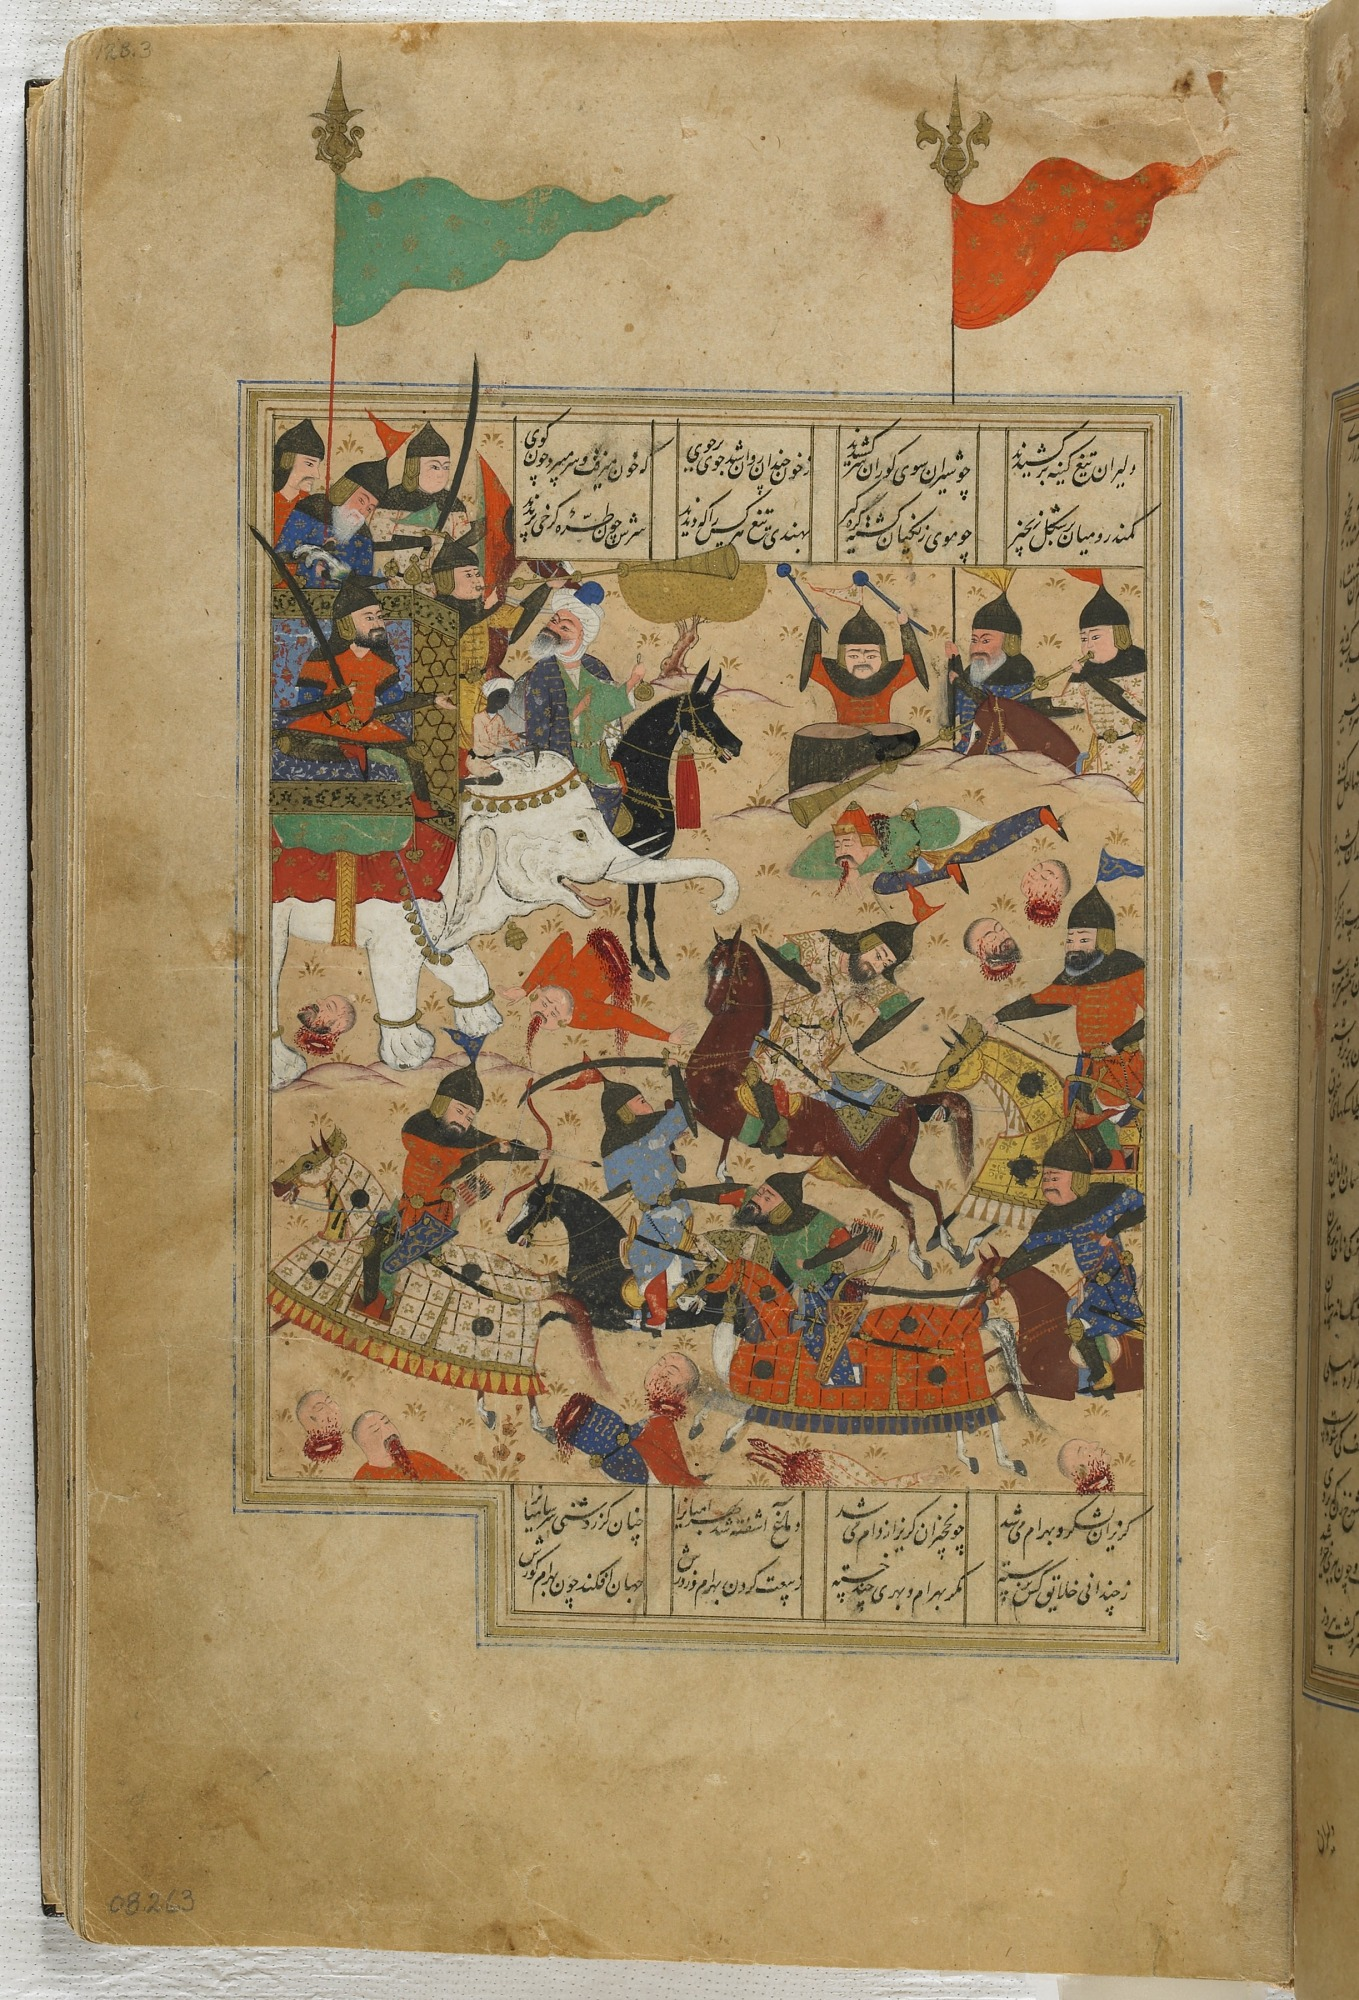 Folio from a Khamsa (Quintet) by Nizami (d.1209); recto: illustration: A battle between the forces of Khusraw and Bahram Chubina; verso: text